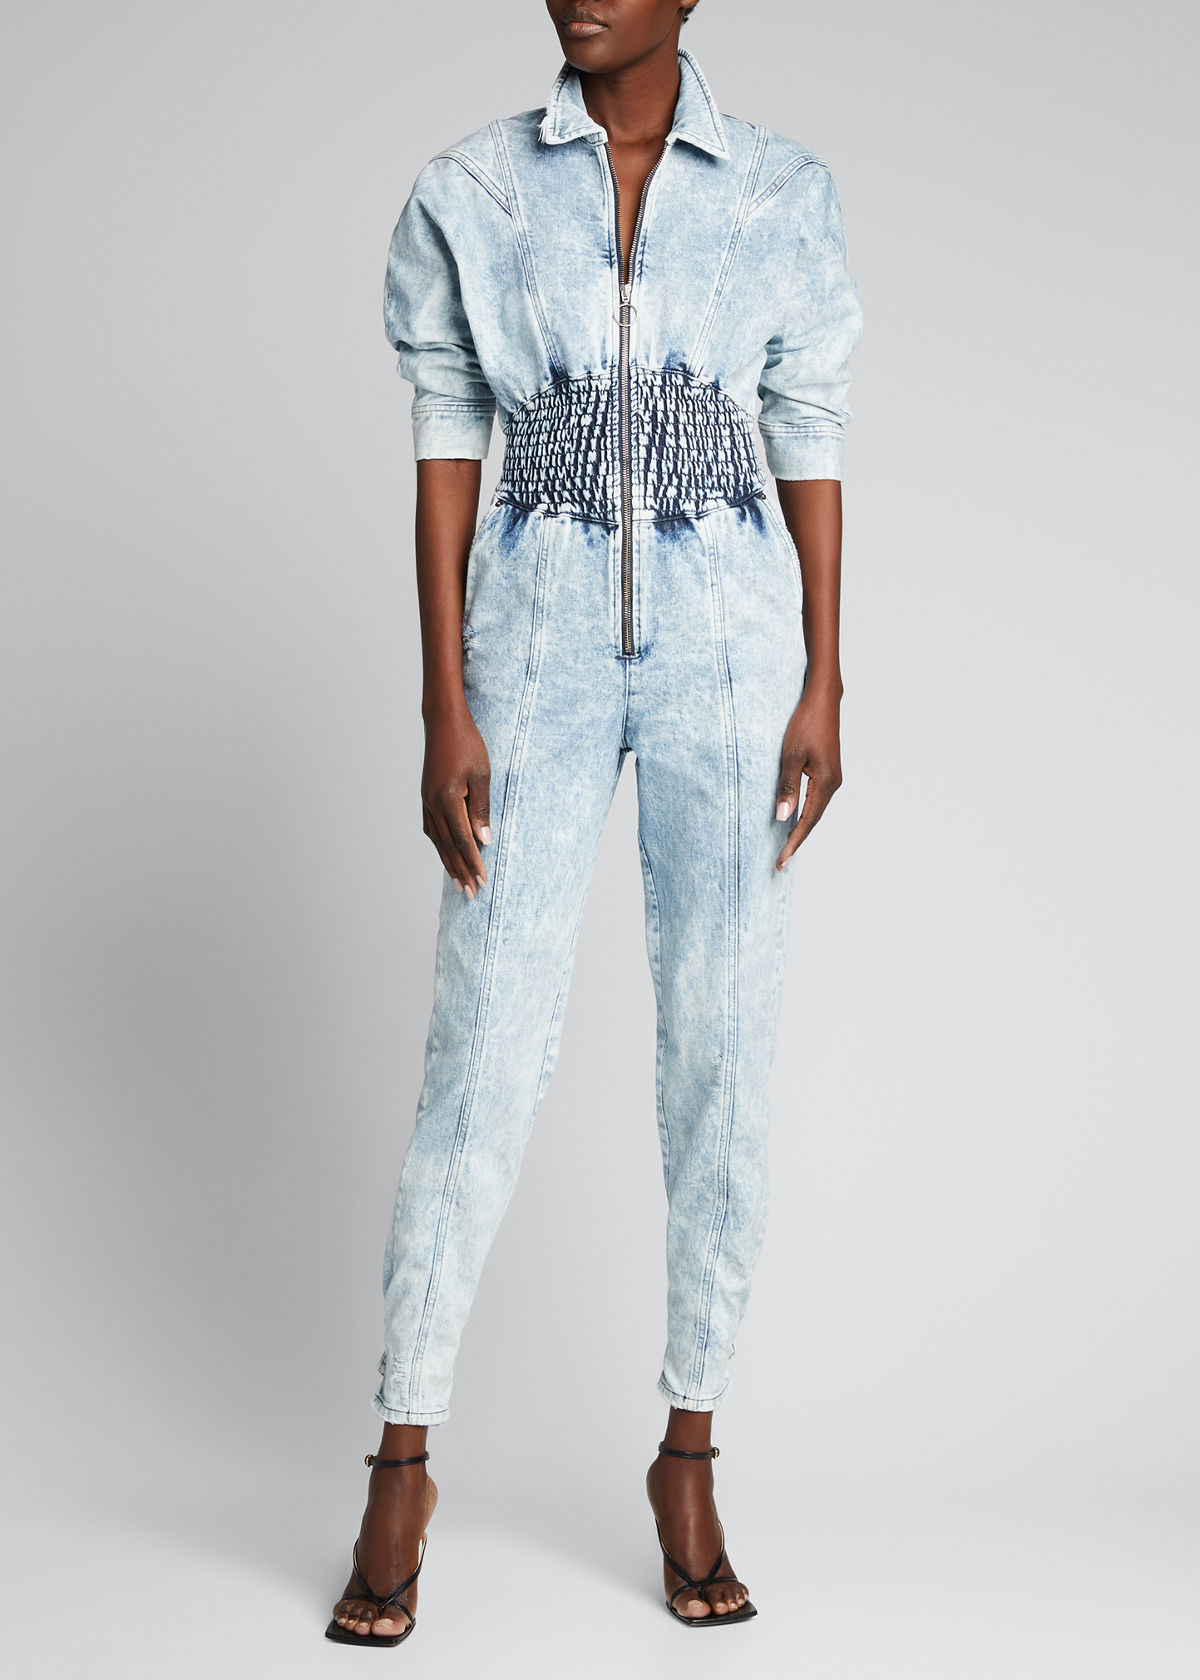 Retroféte ETI SMOCKED DENIM JUMPSUIT